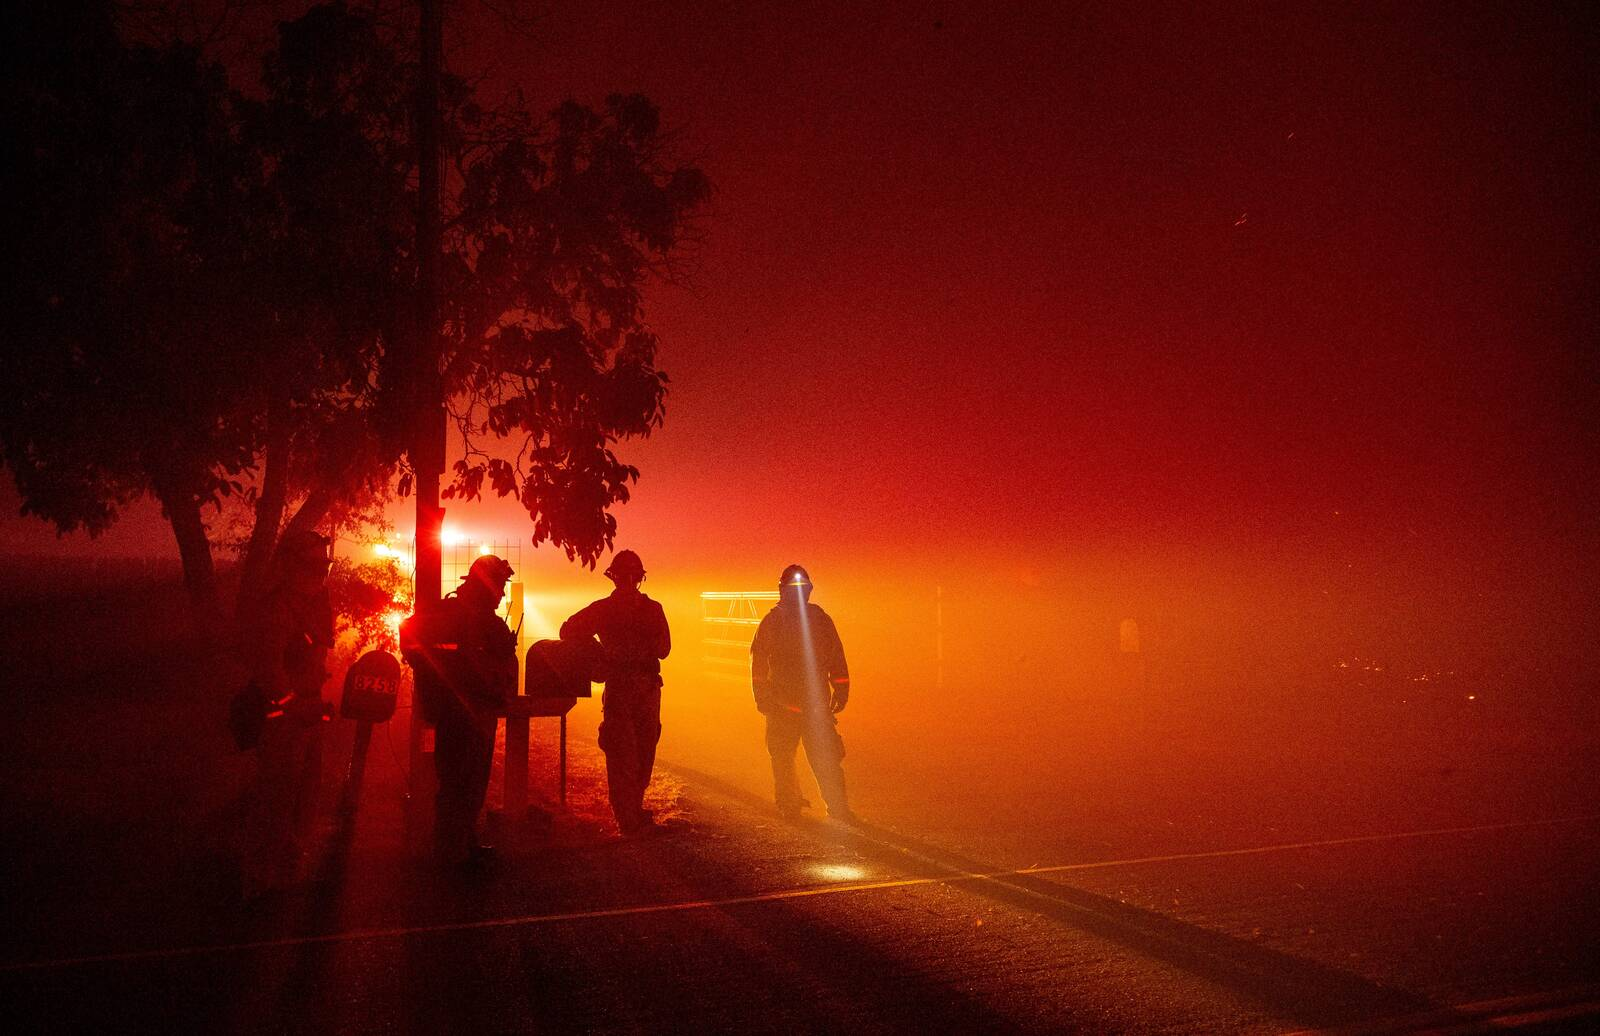 Firefighters monitor flames as they approach a residence in the valley area of Vacaville, northern California during the LNU Lightning Complex fire on August 19, 2020. Credit: Josh Edelson/AFP via Getty Images